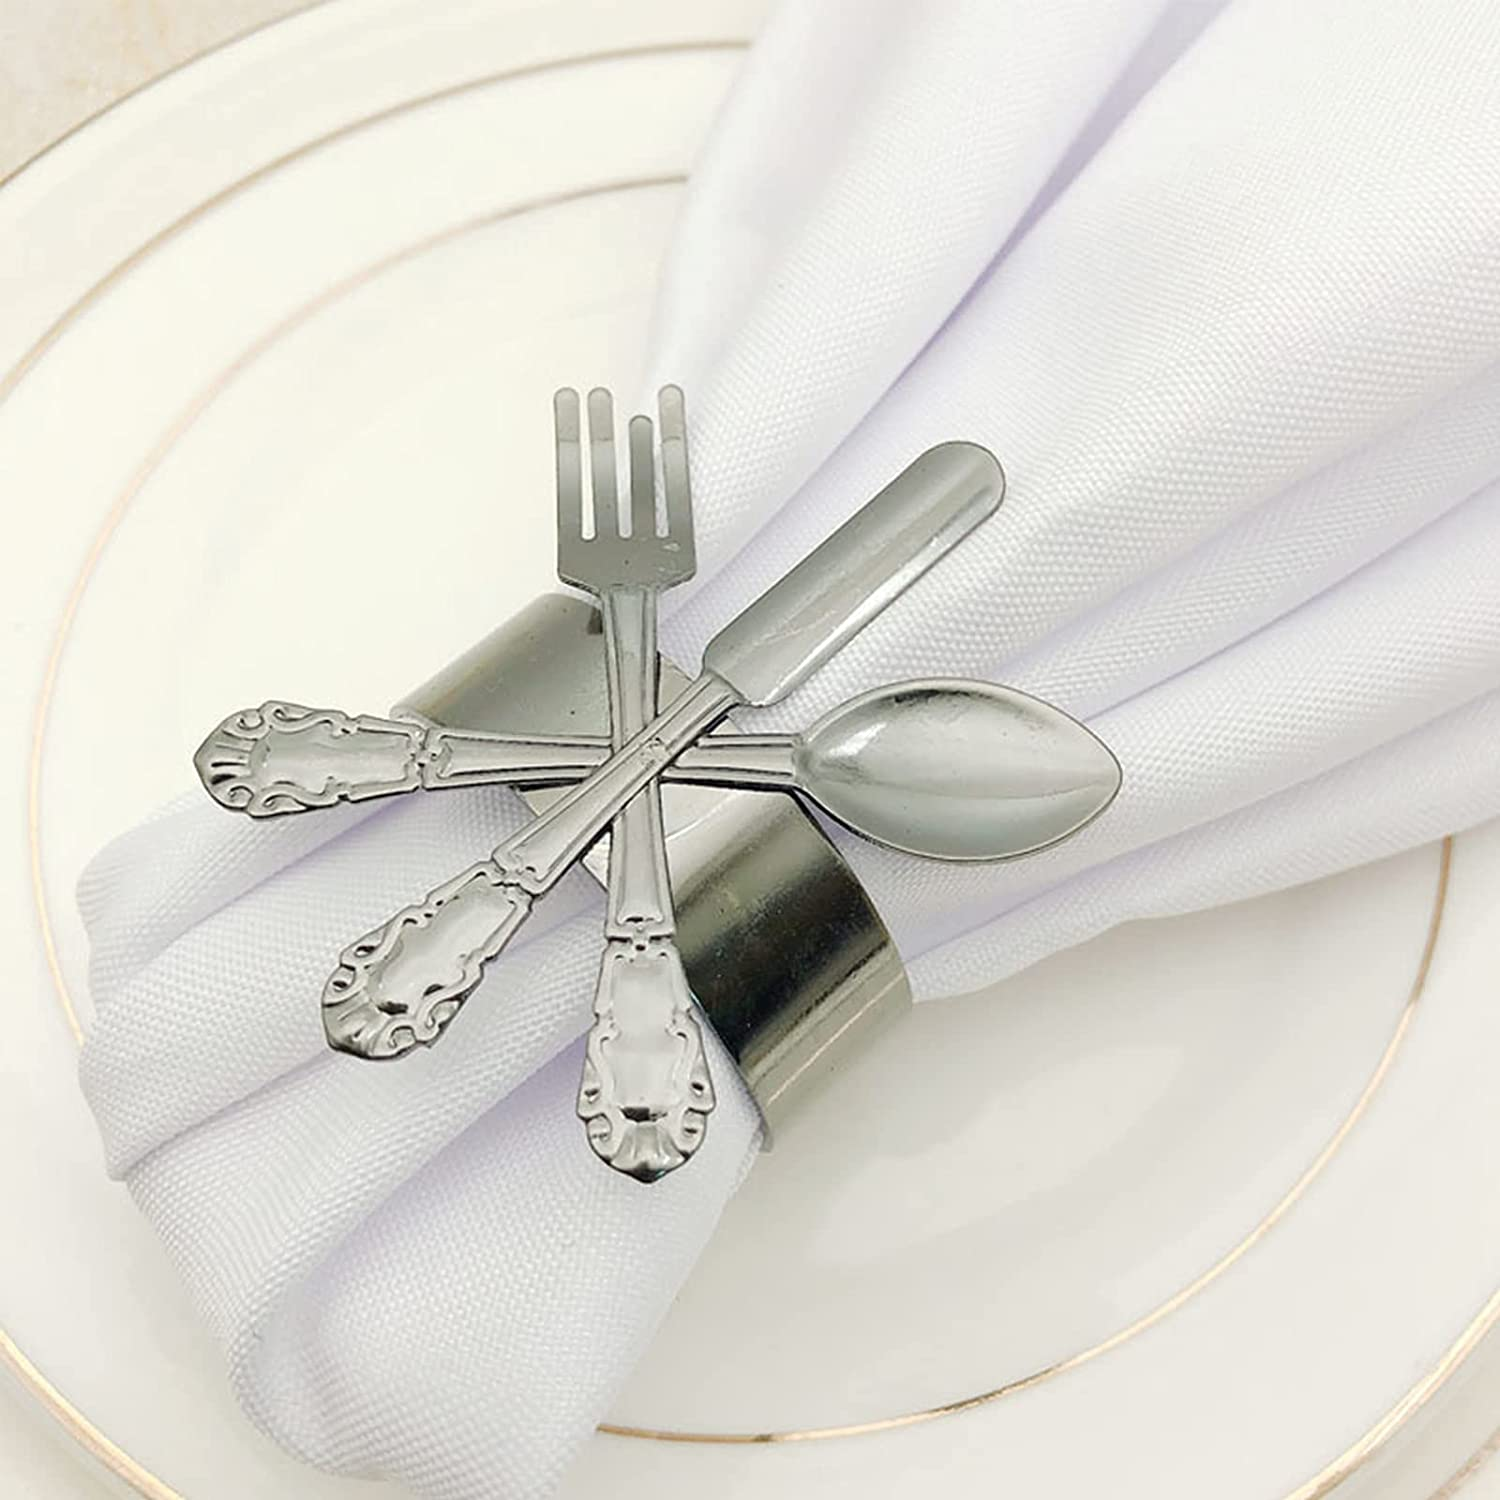 AUZOOHH Cutlery Shape Napkin Loop Metal All items free shipping Wedding Outlet SALE Pa Holder